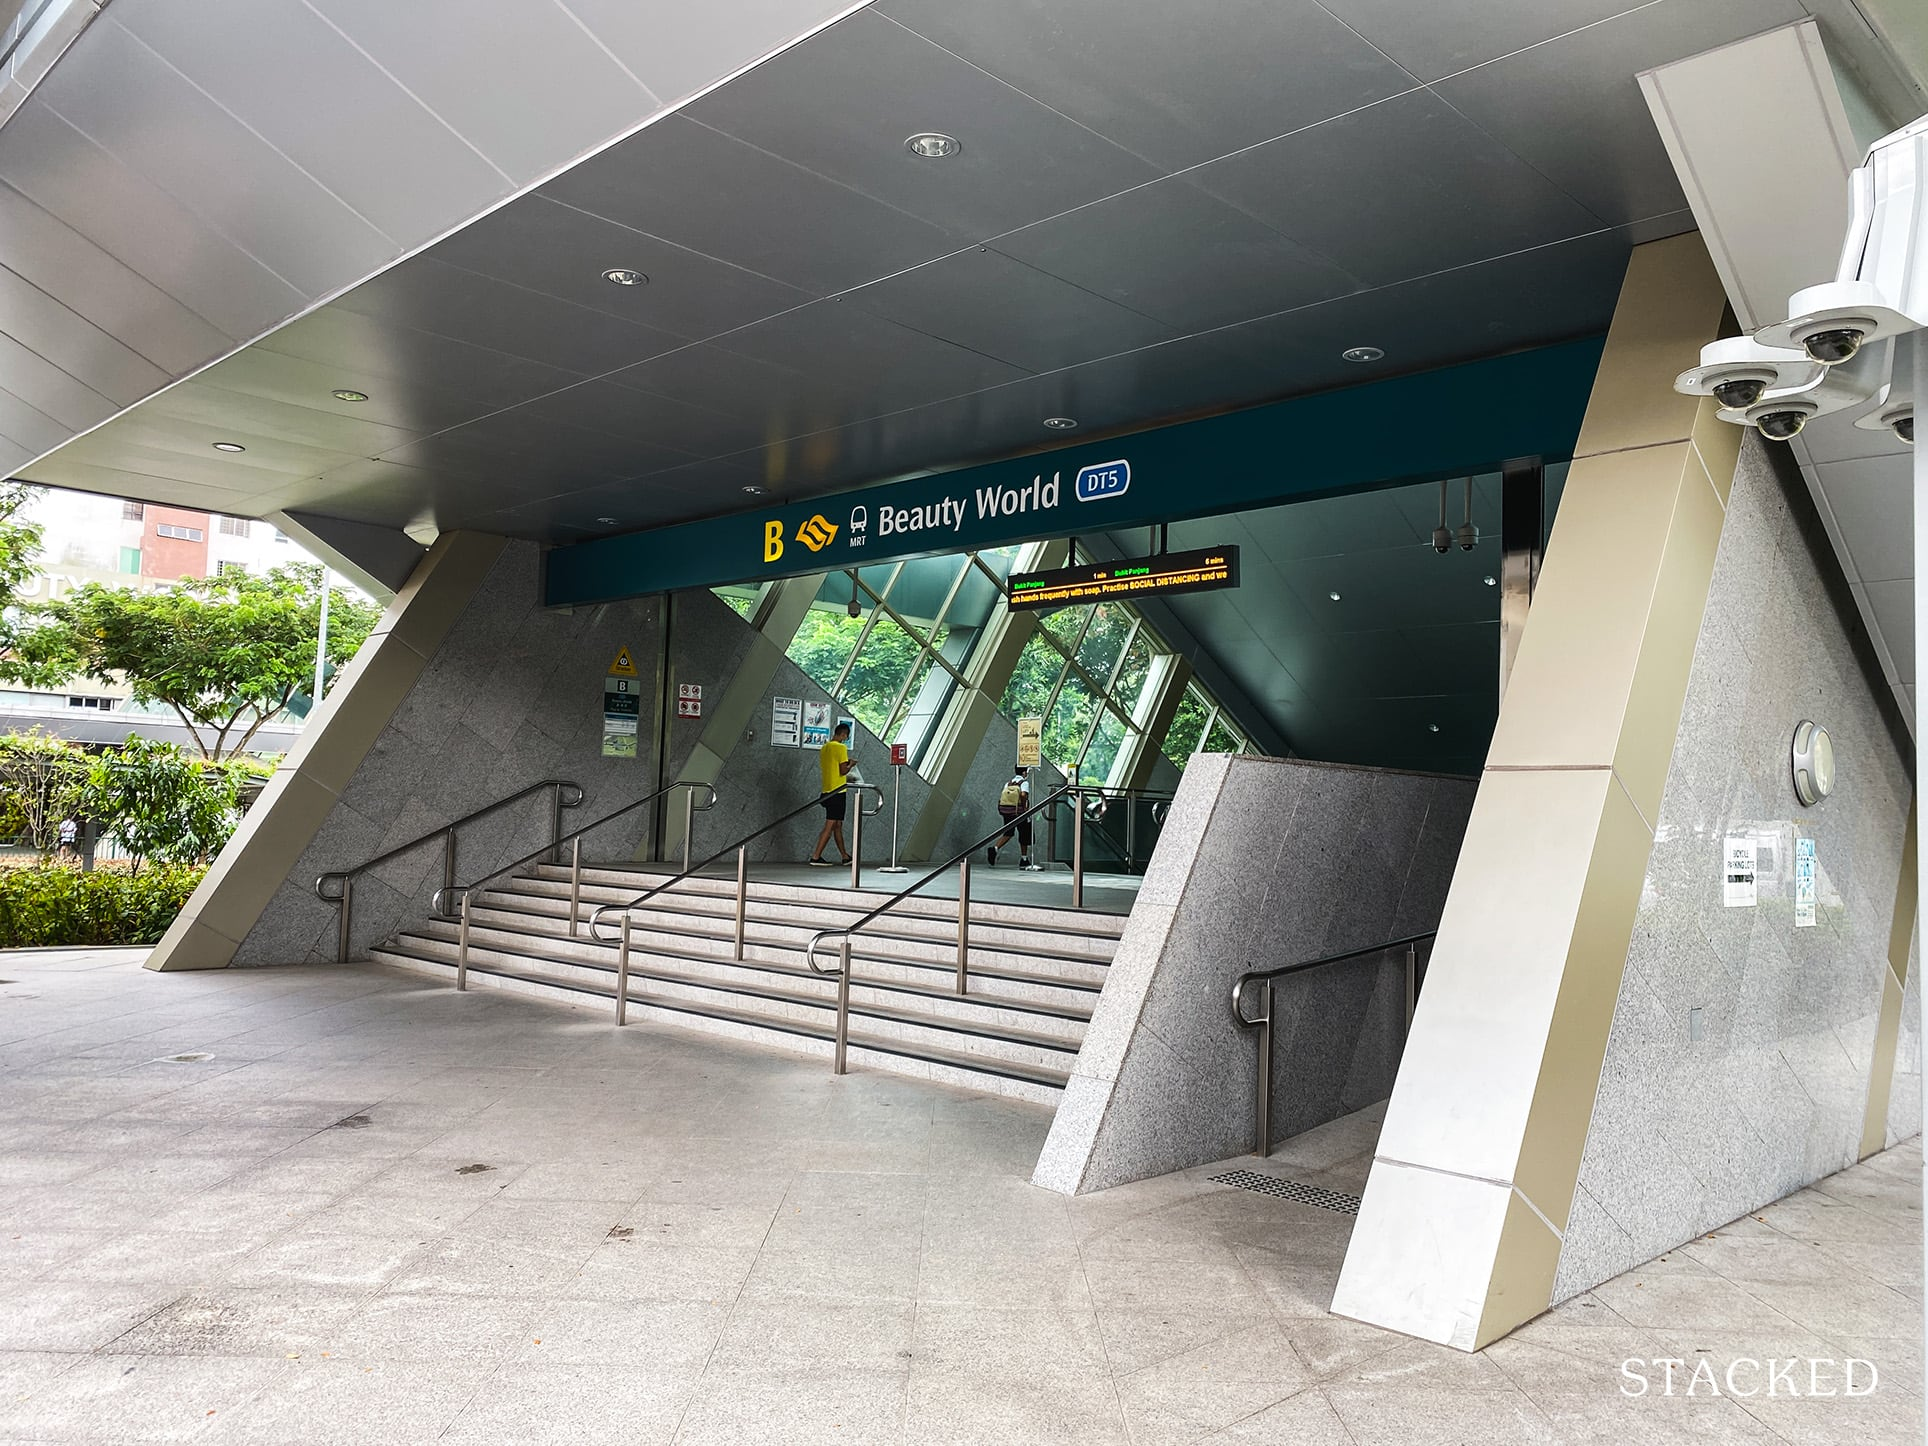 beauty world mrt